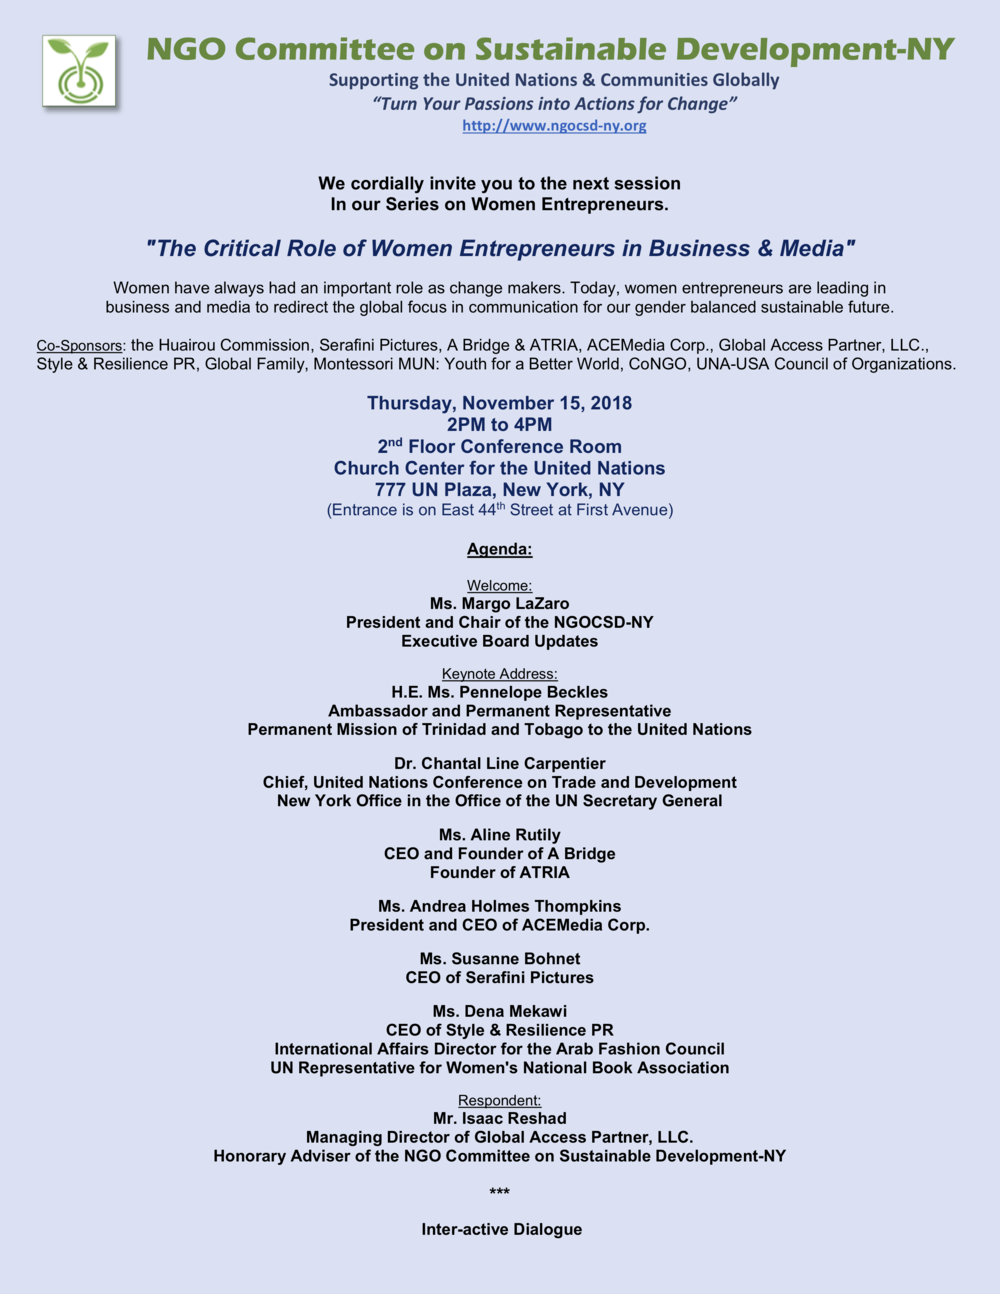 NGOCSD-NY 11-15-18 Women Entrepreneurs Series Invitation A2.png